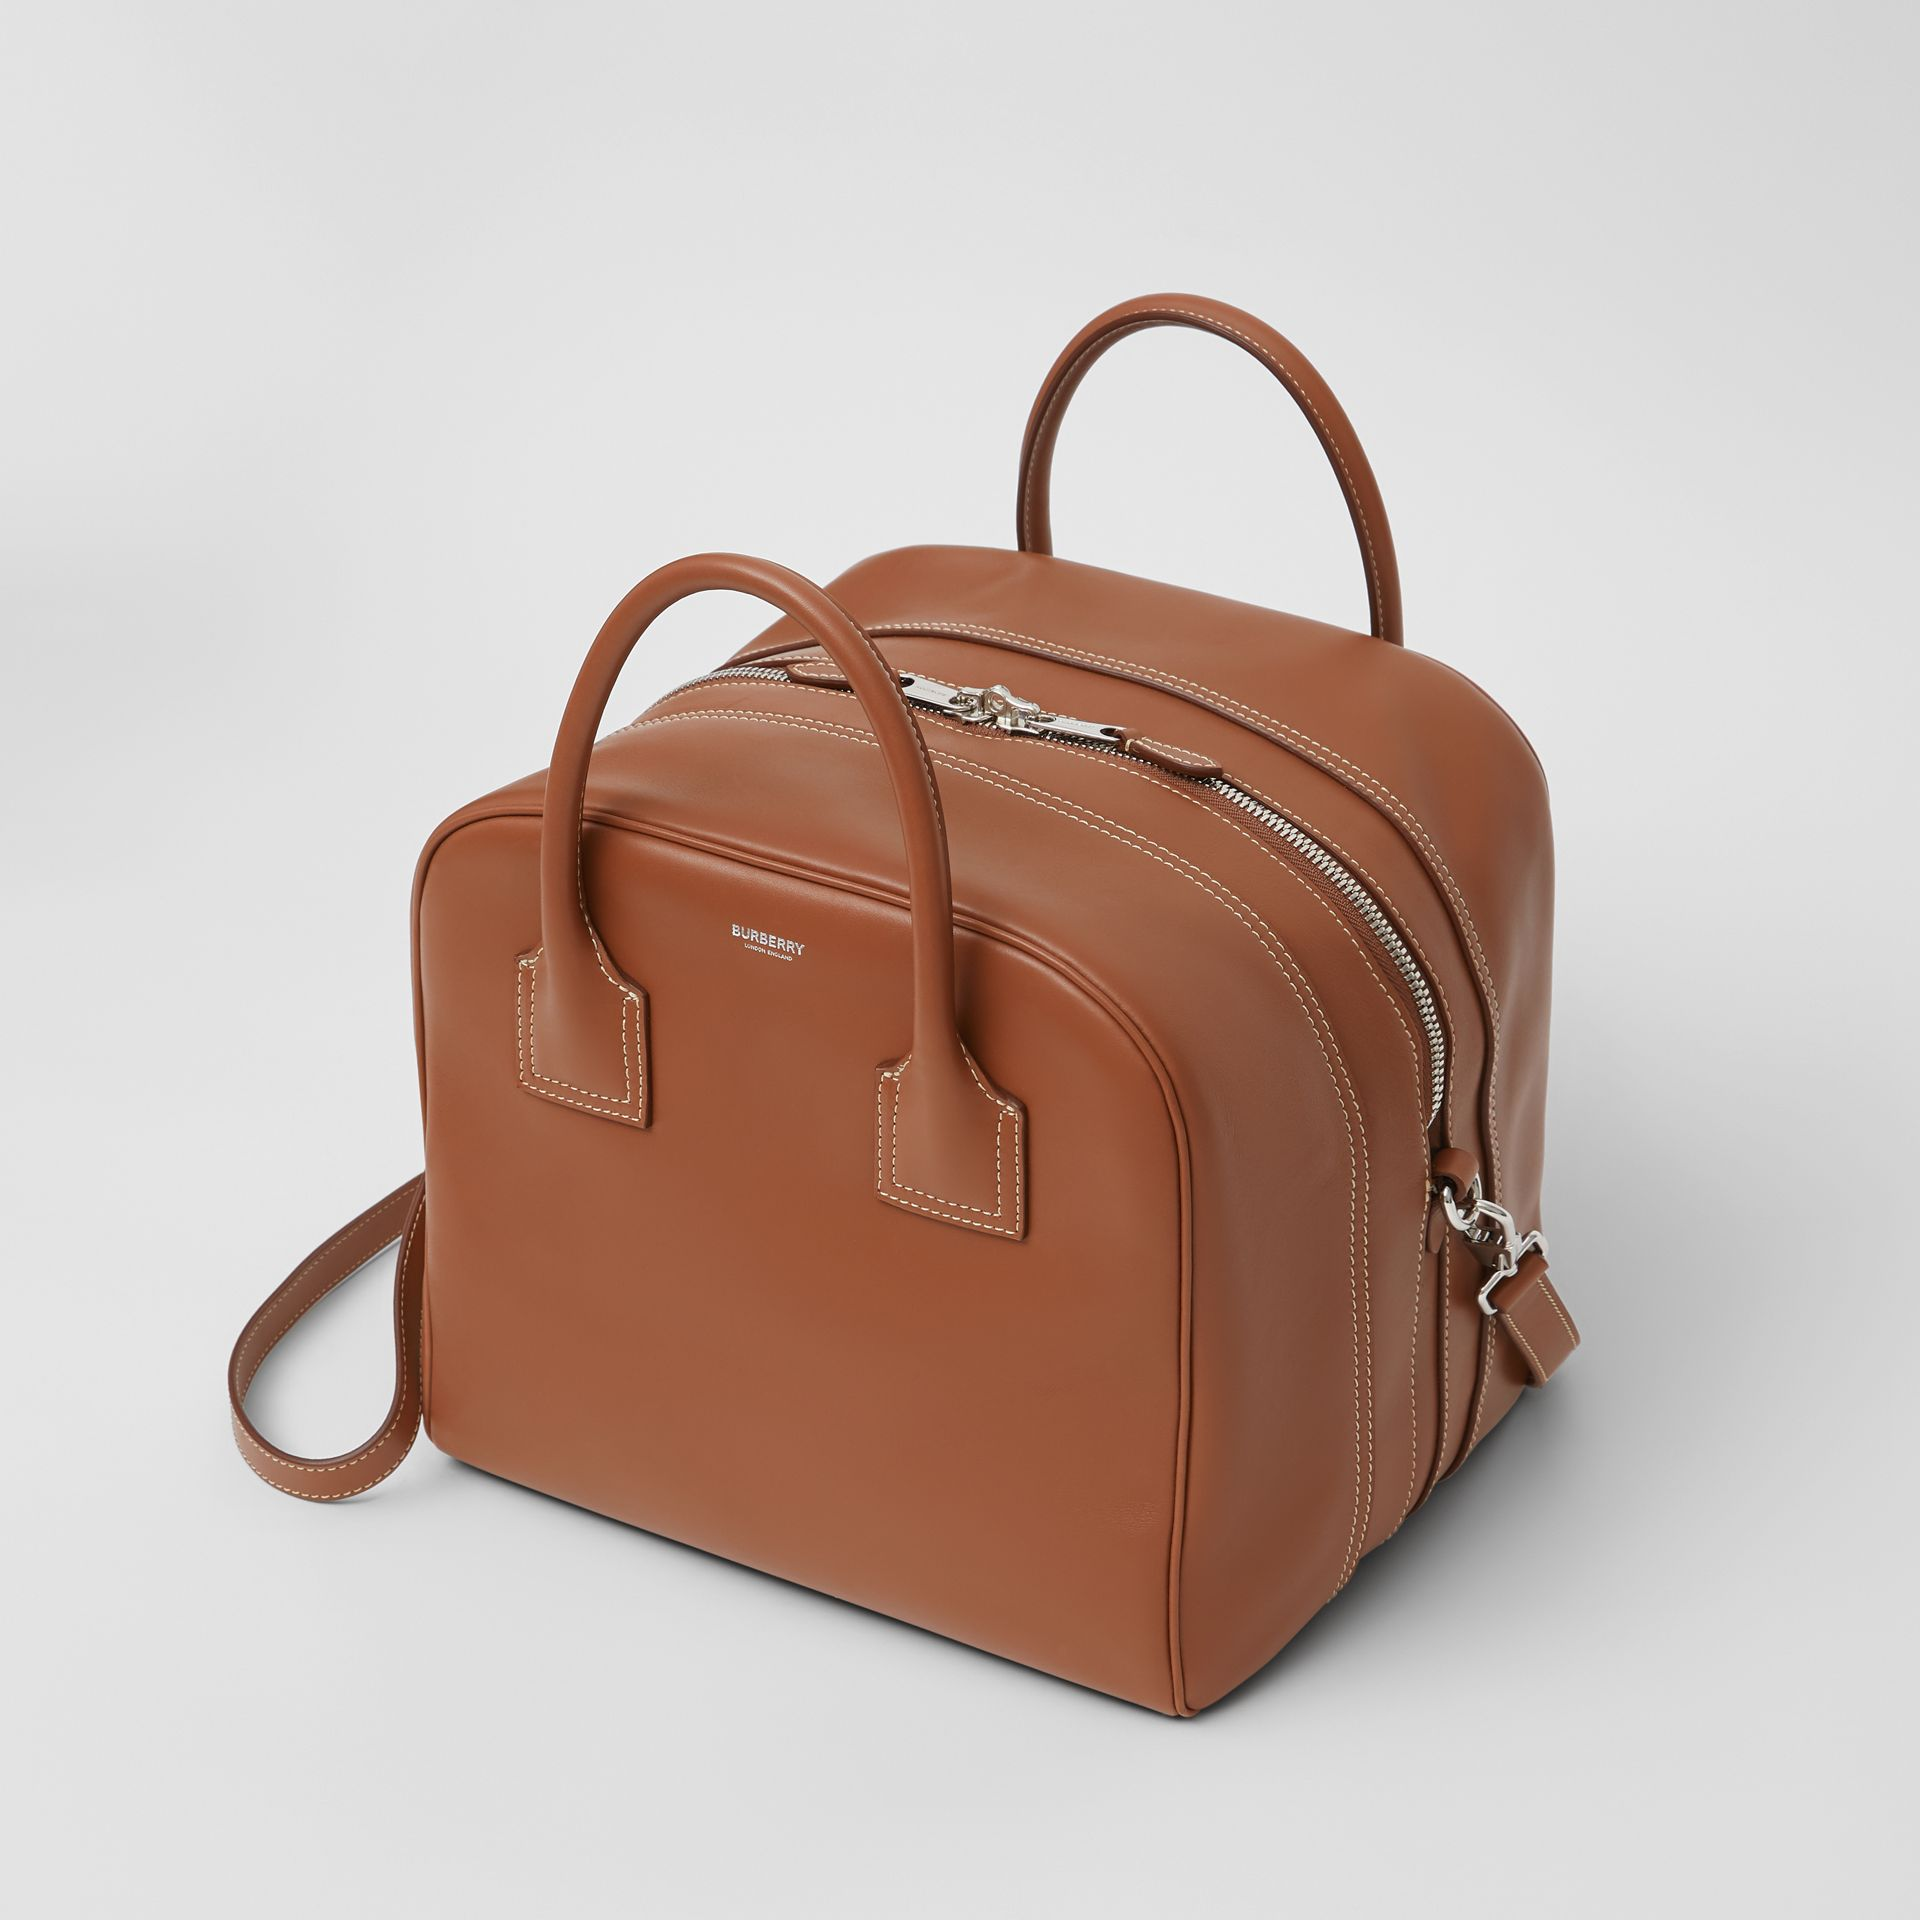 Medium Leather Cube Bag in Malt Brown - Women | Burberry Canada - gallery image 3